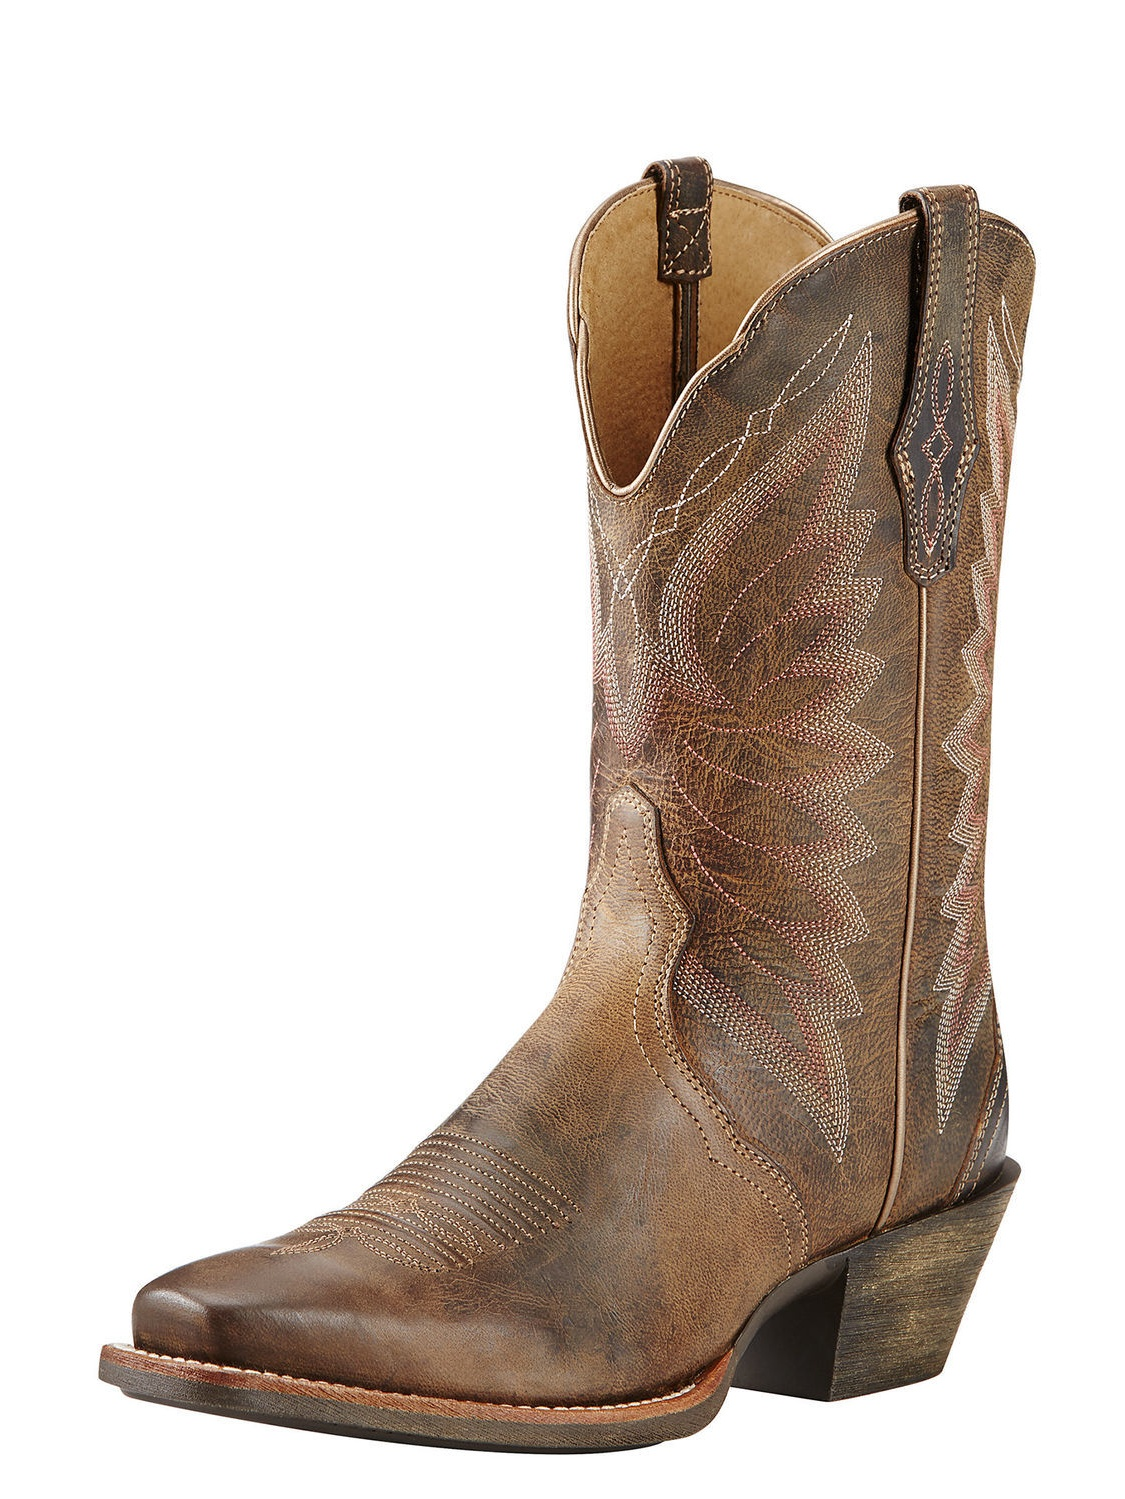 Ariat Autry Women Square Toe Leather Brown Western Boot by Ariat